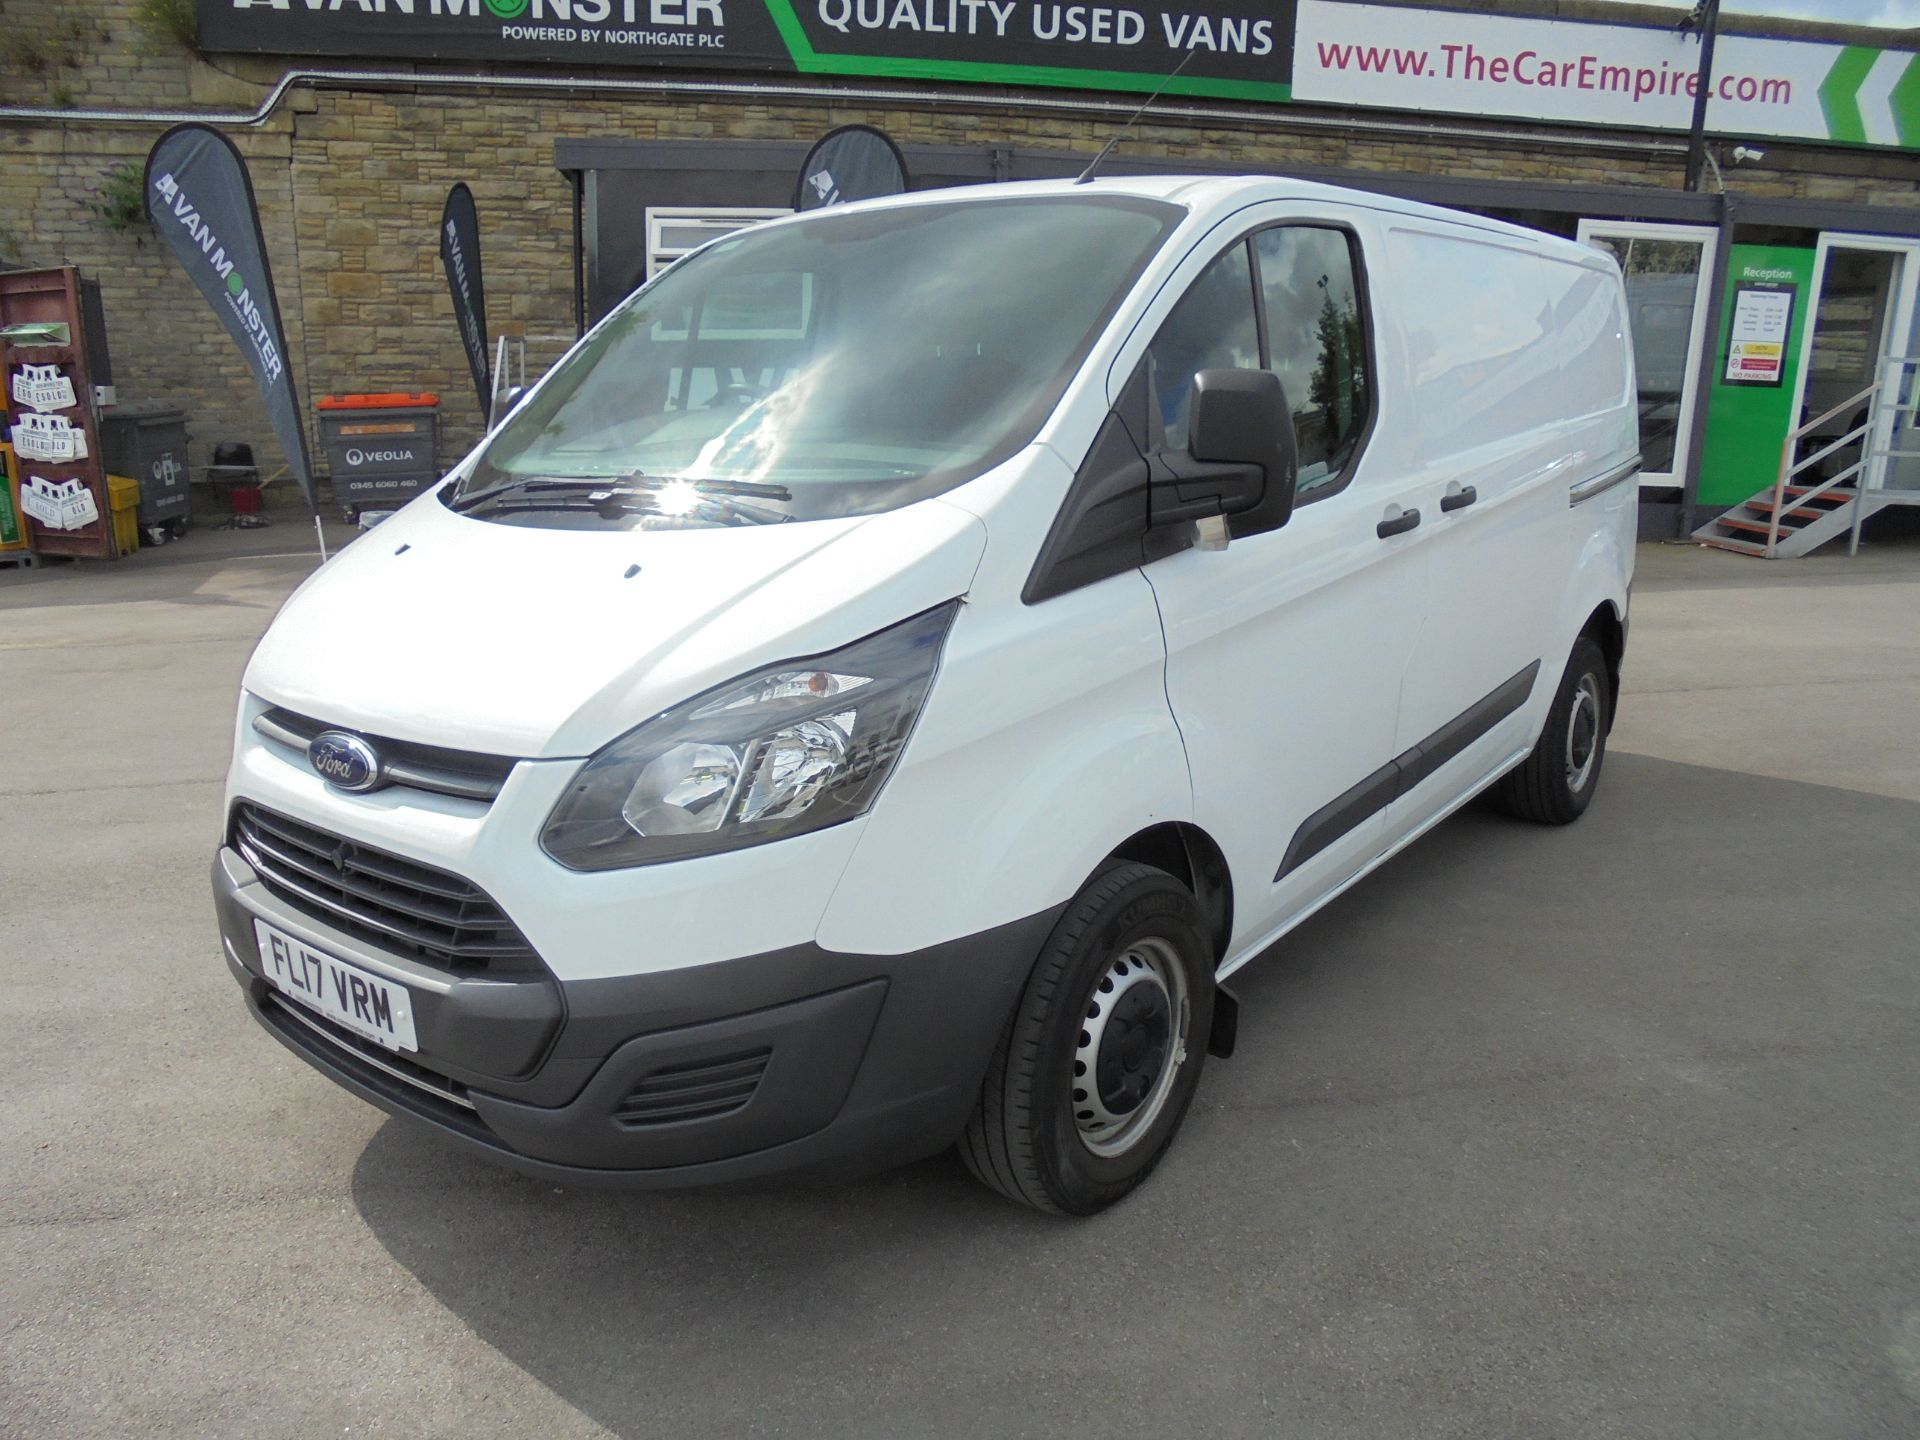 2017 Ford Transit Custom 2.0 Tdci 105Ps Low Roof Van VALUE RANGE VEHICLE CONDITION REFLECTED IN PRICE* (FL17VRM) Image 3